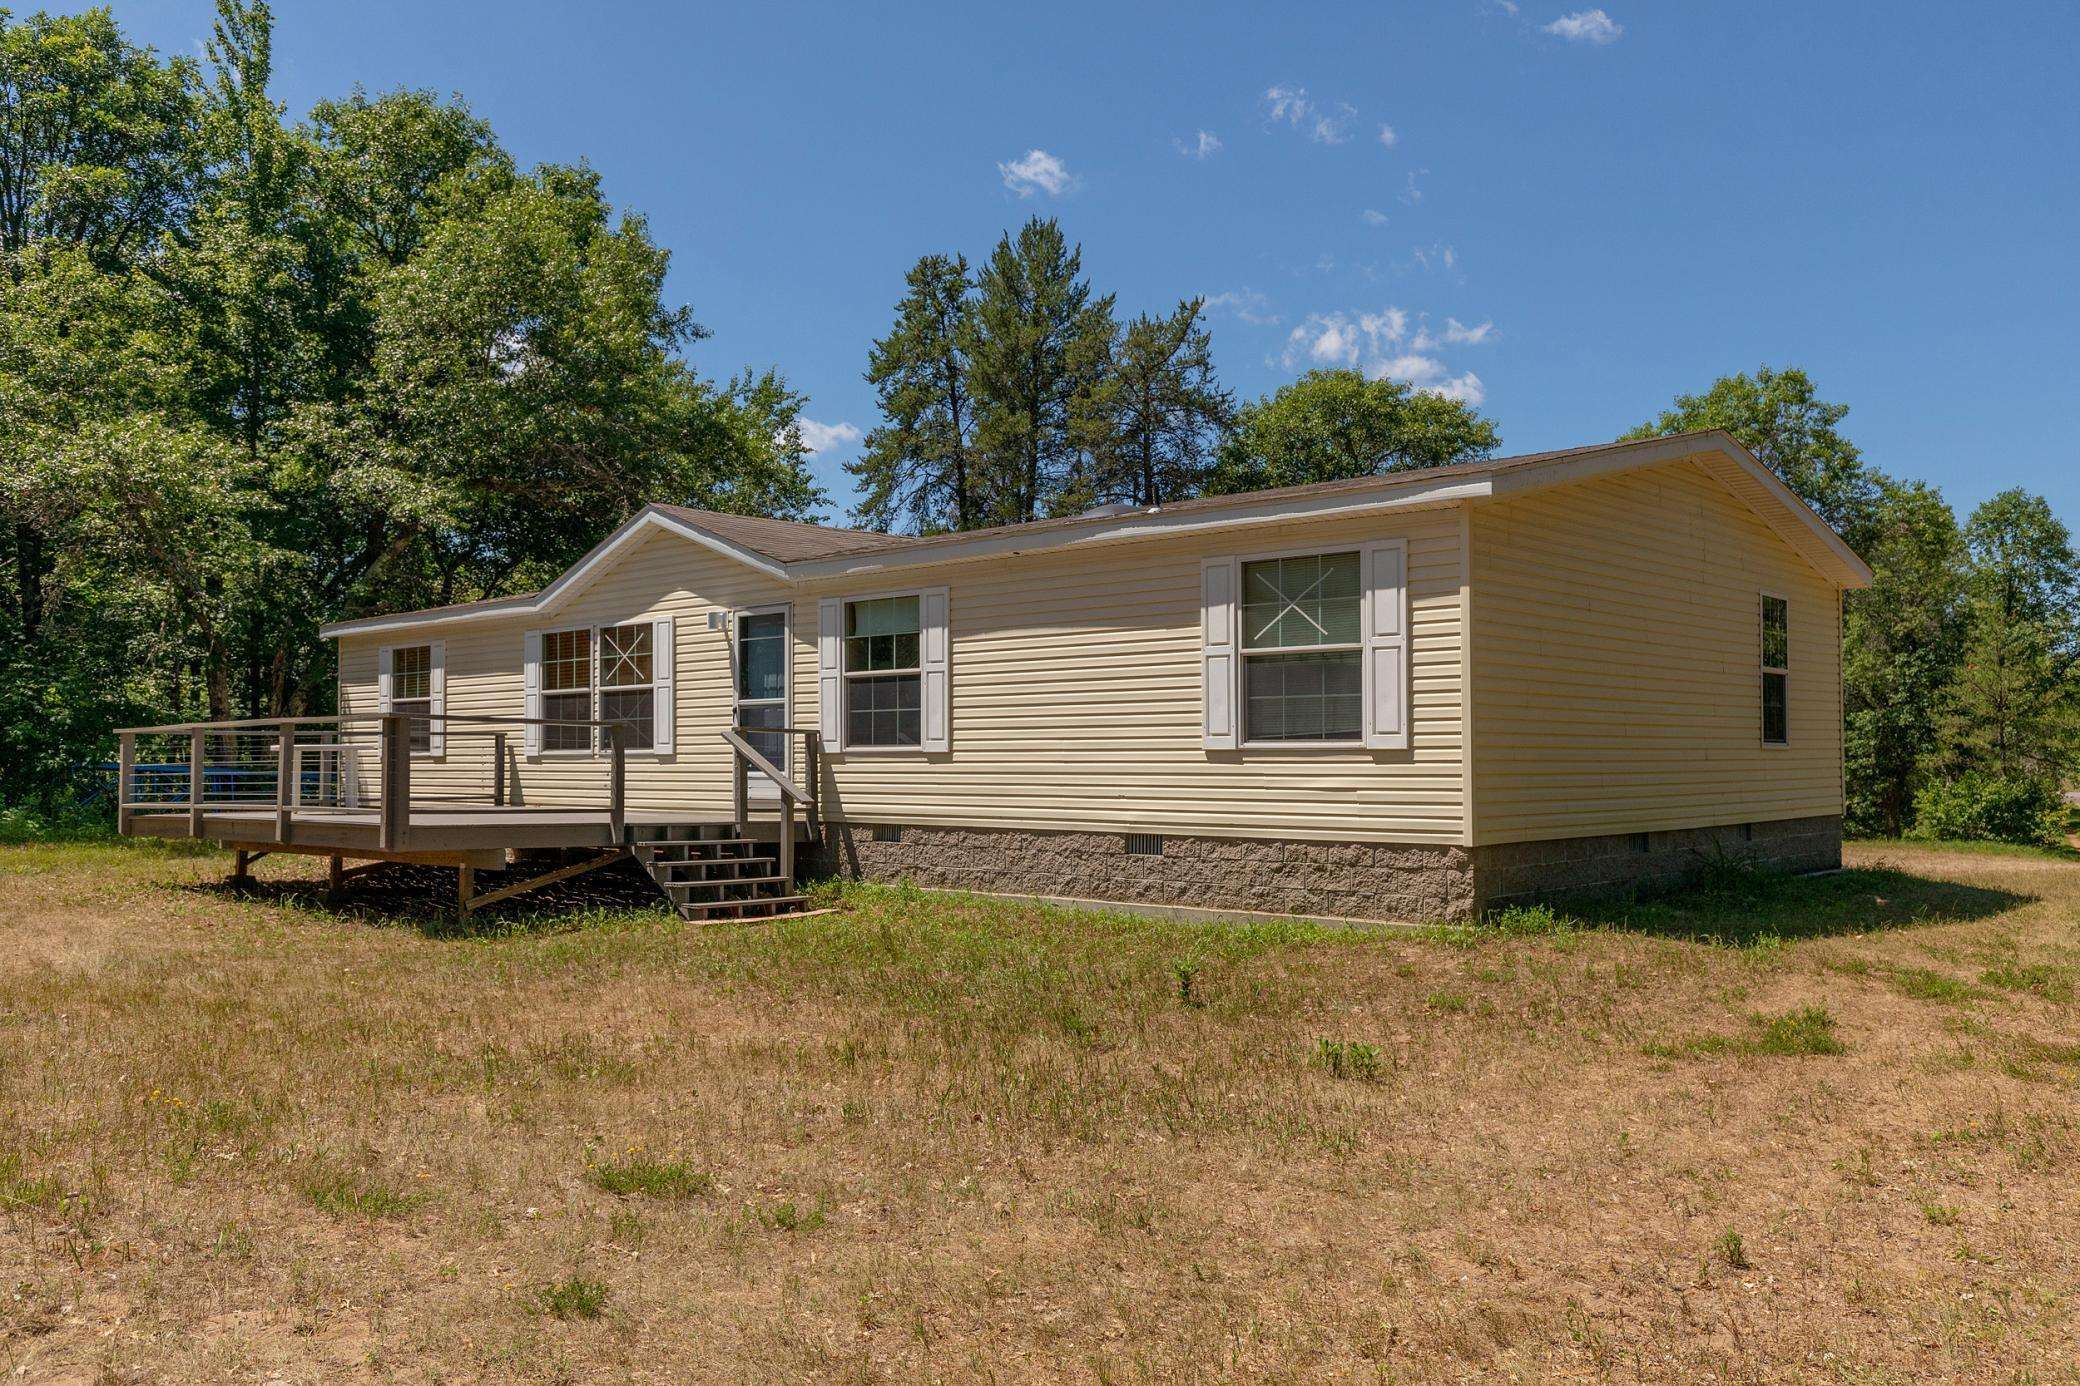 2890 State 371 NW Property Photo - Hackensack, MN real estate listing